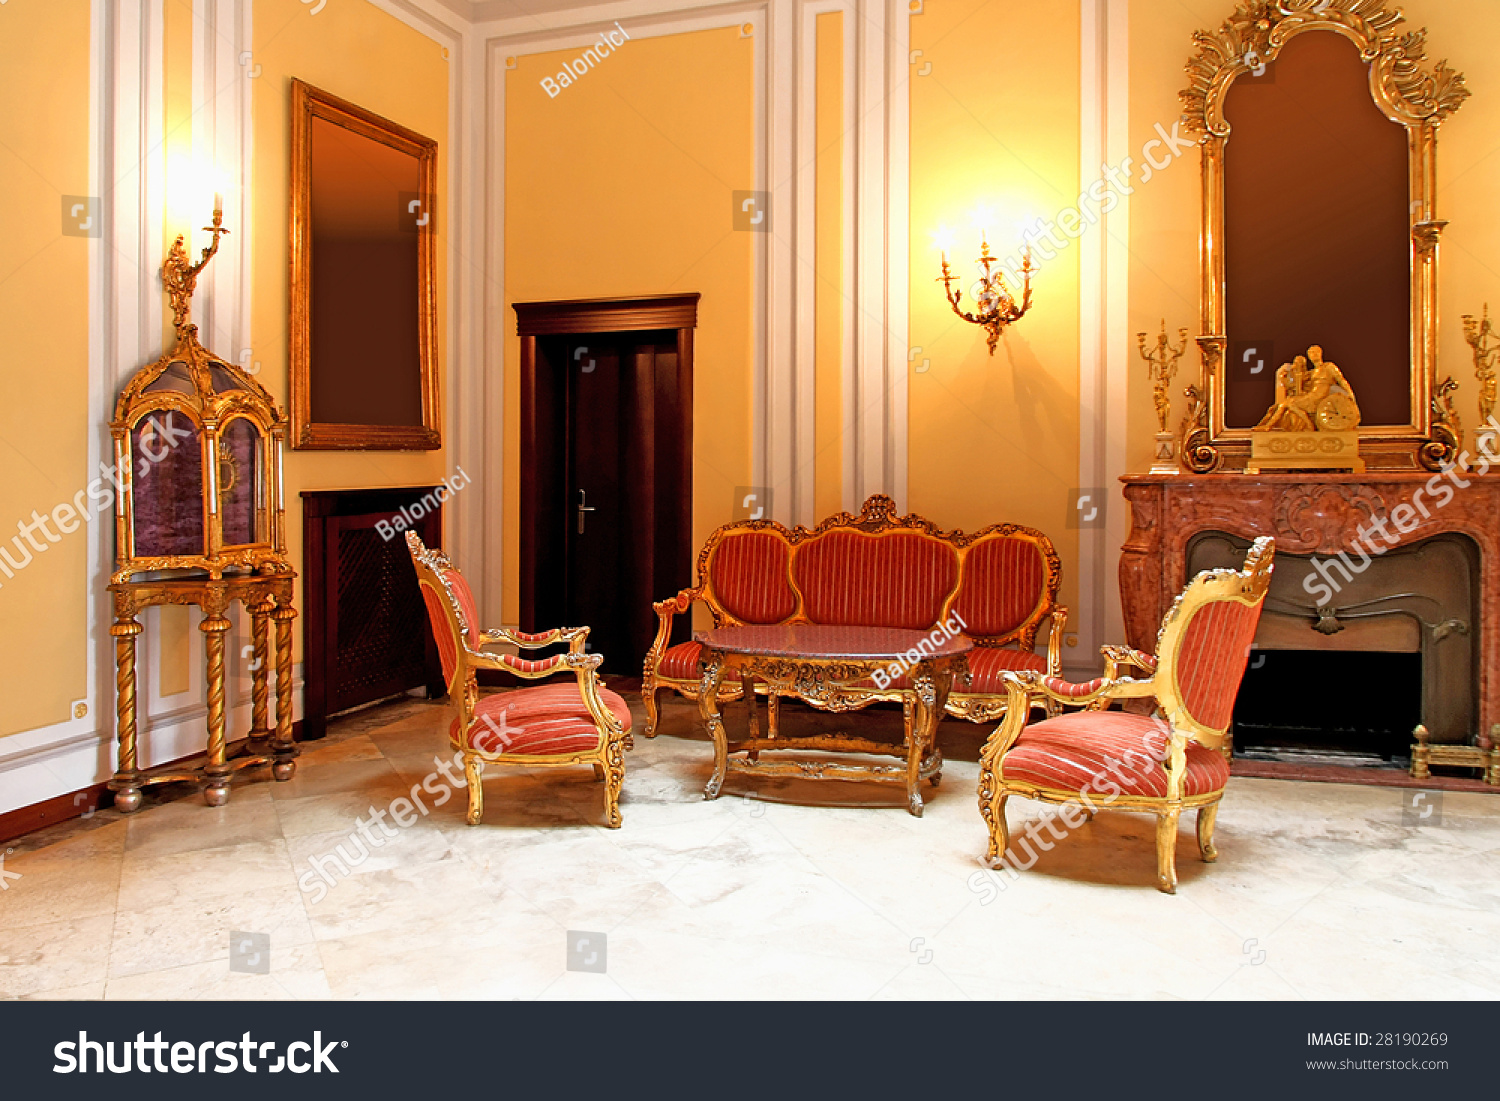 Medieval Style Room Old Furniture Marble Stock Photo Edit Now